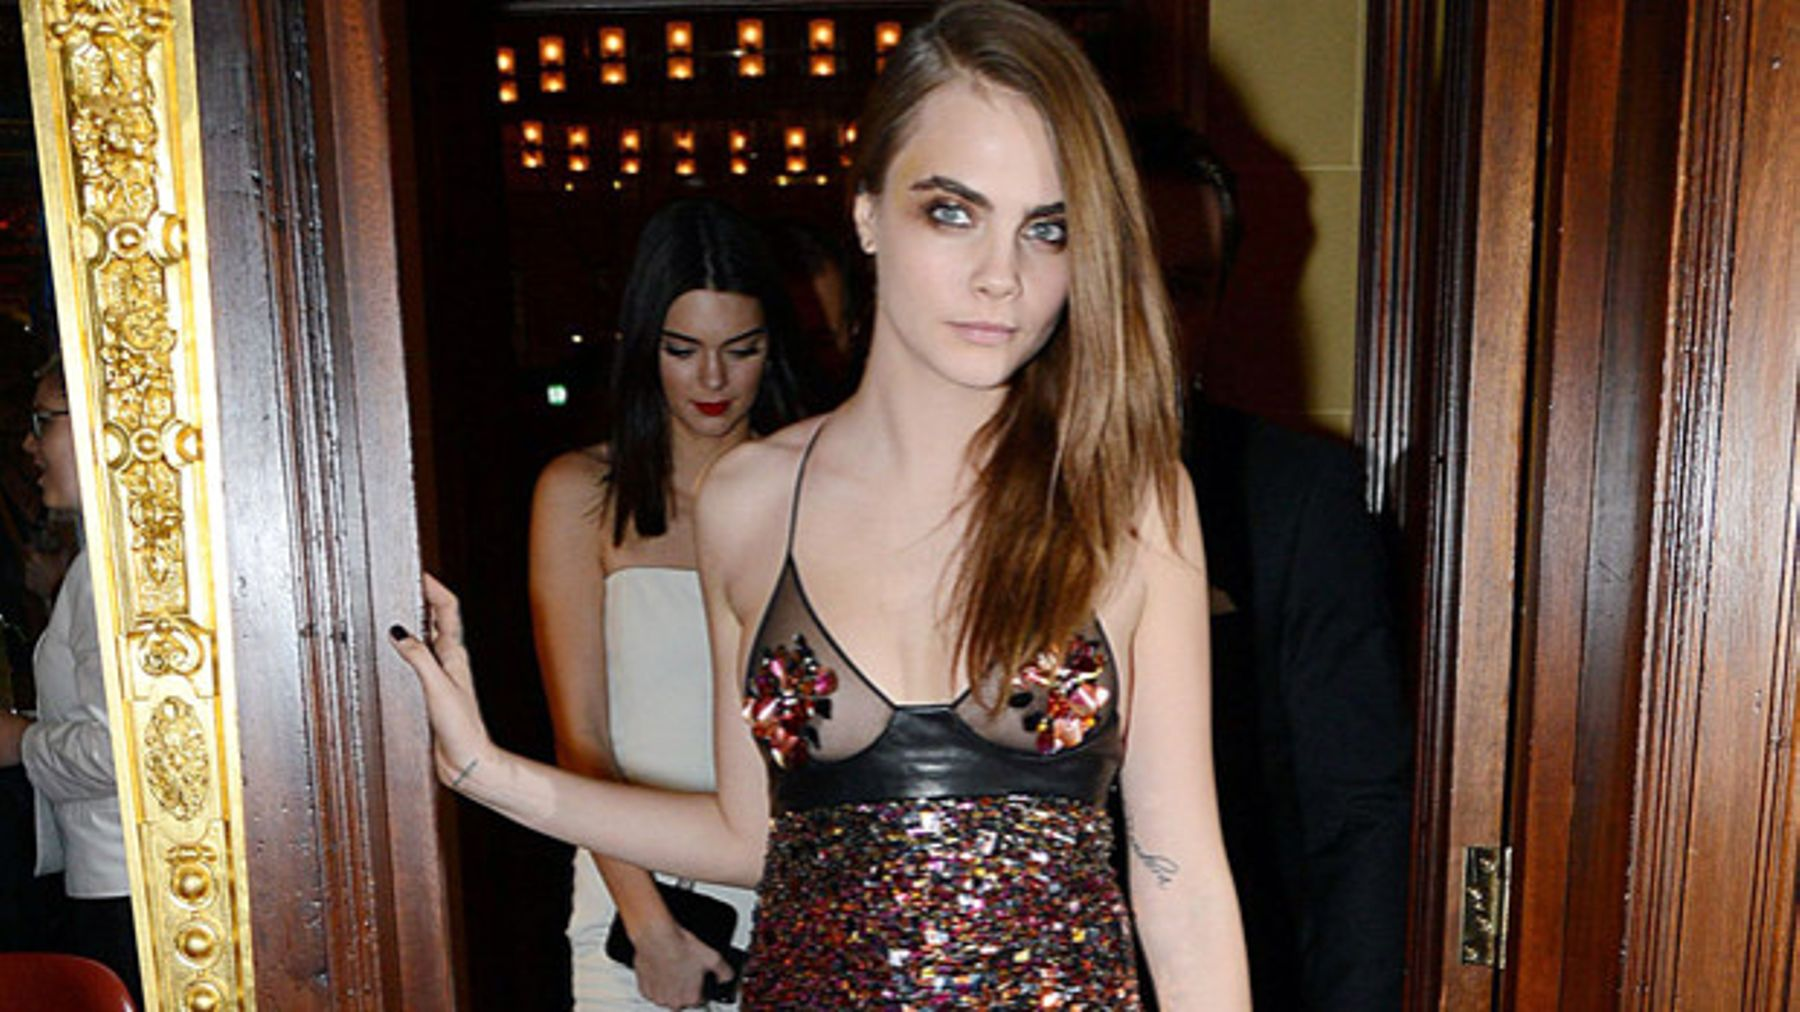 d3727fc36be Cara D stepped out with them, so did Miley, why are we going cray cray for  glittery nipples?